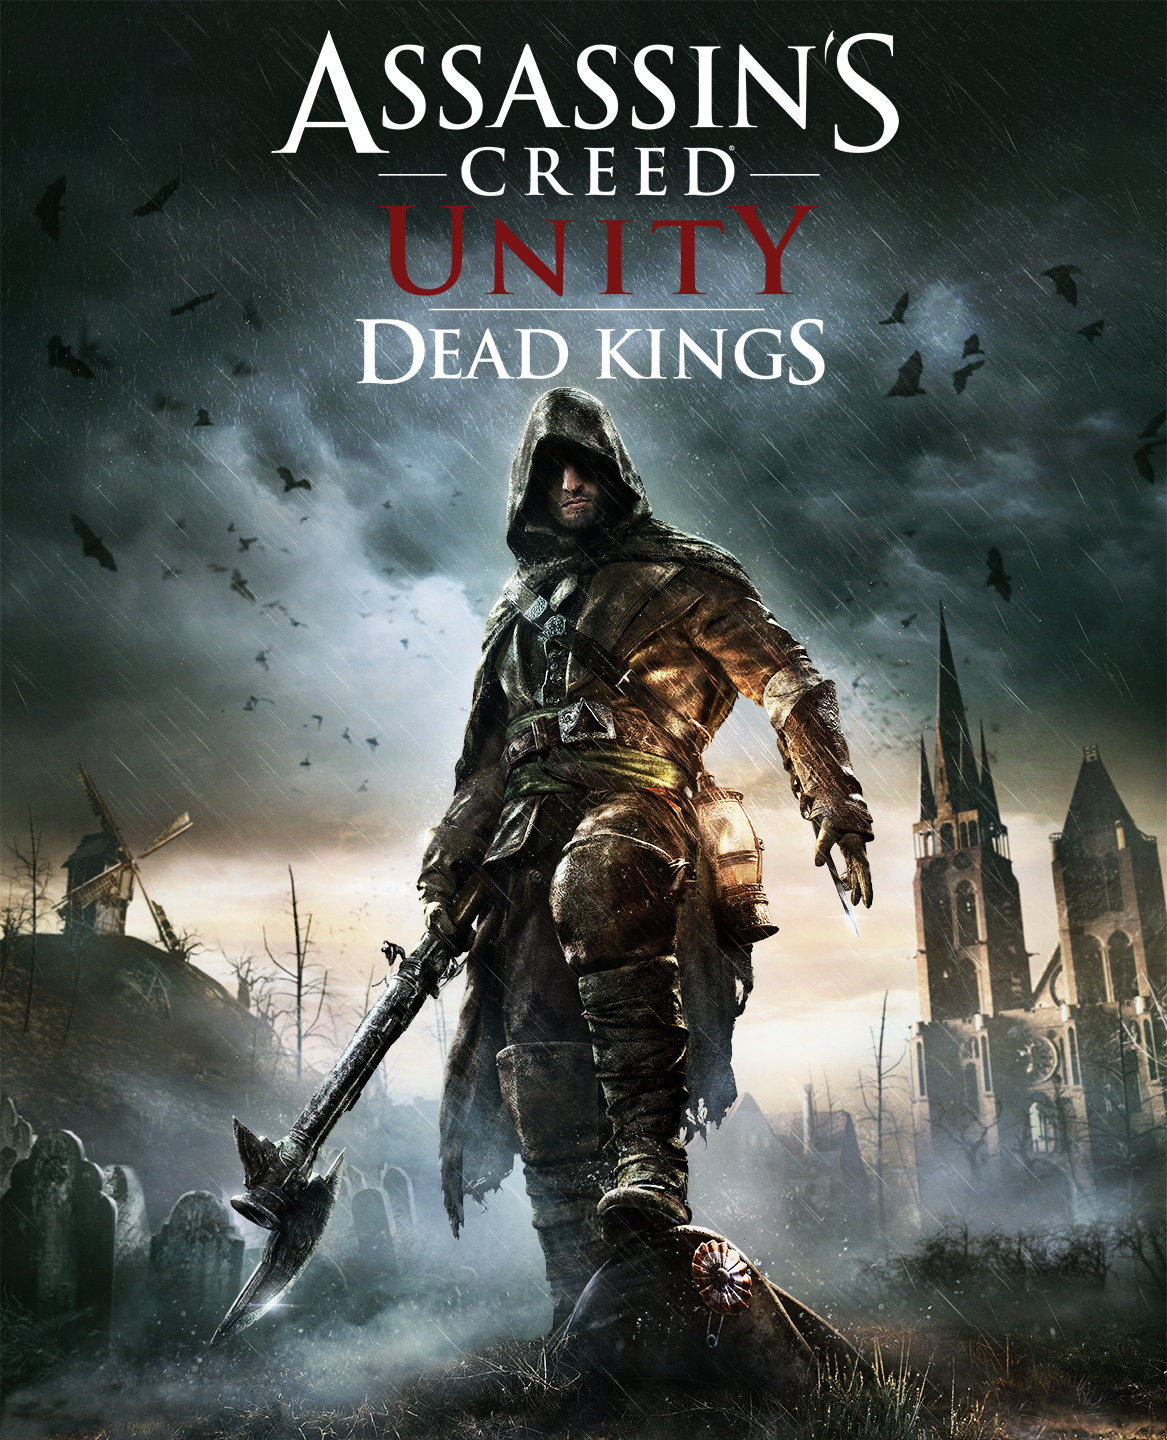 Assassins Creed Unity Dead Kings